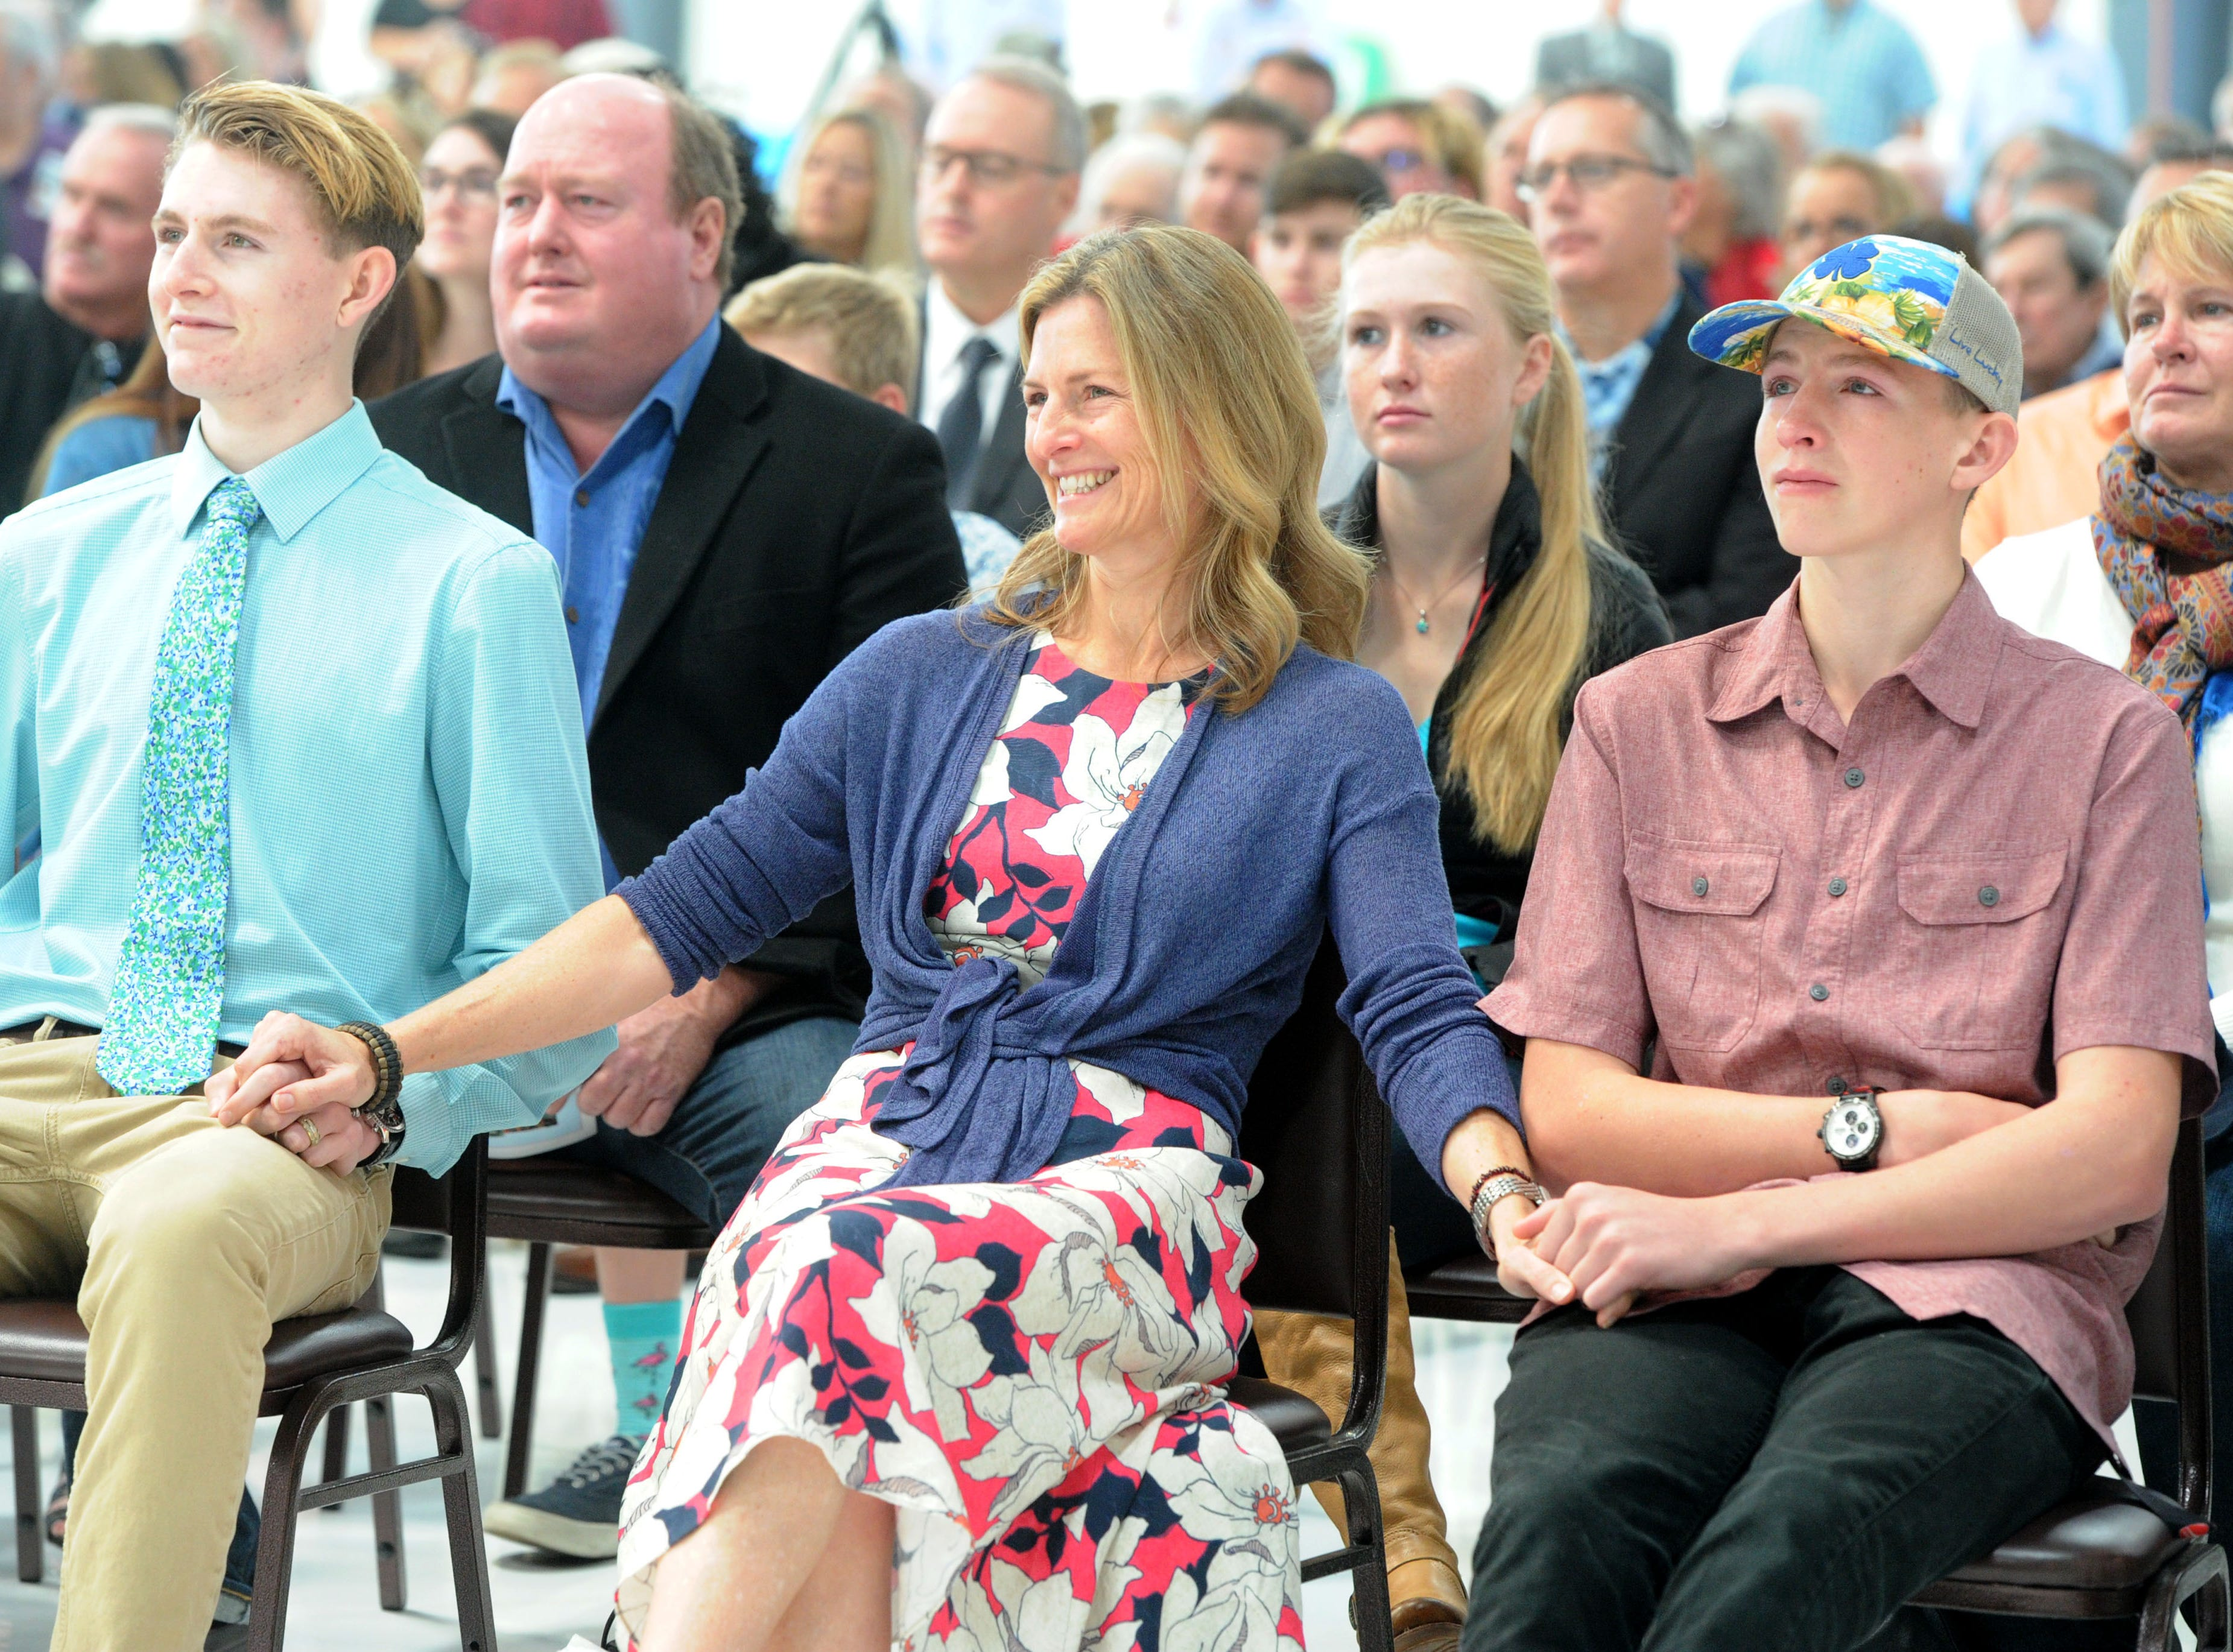 JT McNamee, left, and Peter McNamee hold the hands of their mother, Ann McNamee, at the public memorial service for Todd McNamee on Saturday at the Camarillo Airport. Todd McNamee died in a car crash at the Camarillo Airport last month.